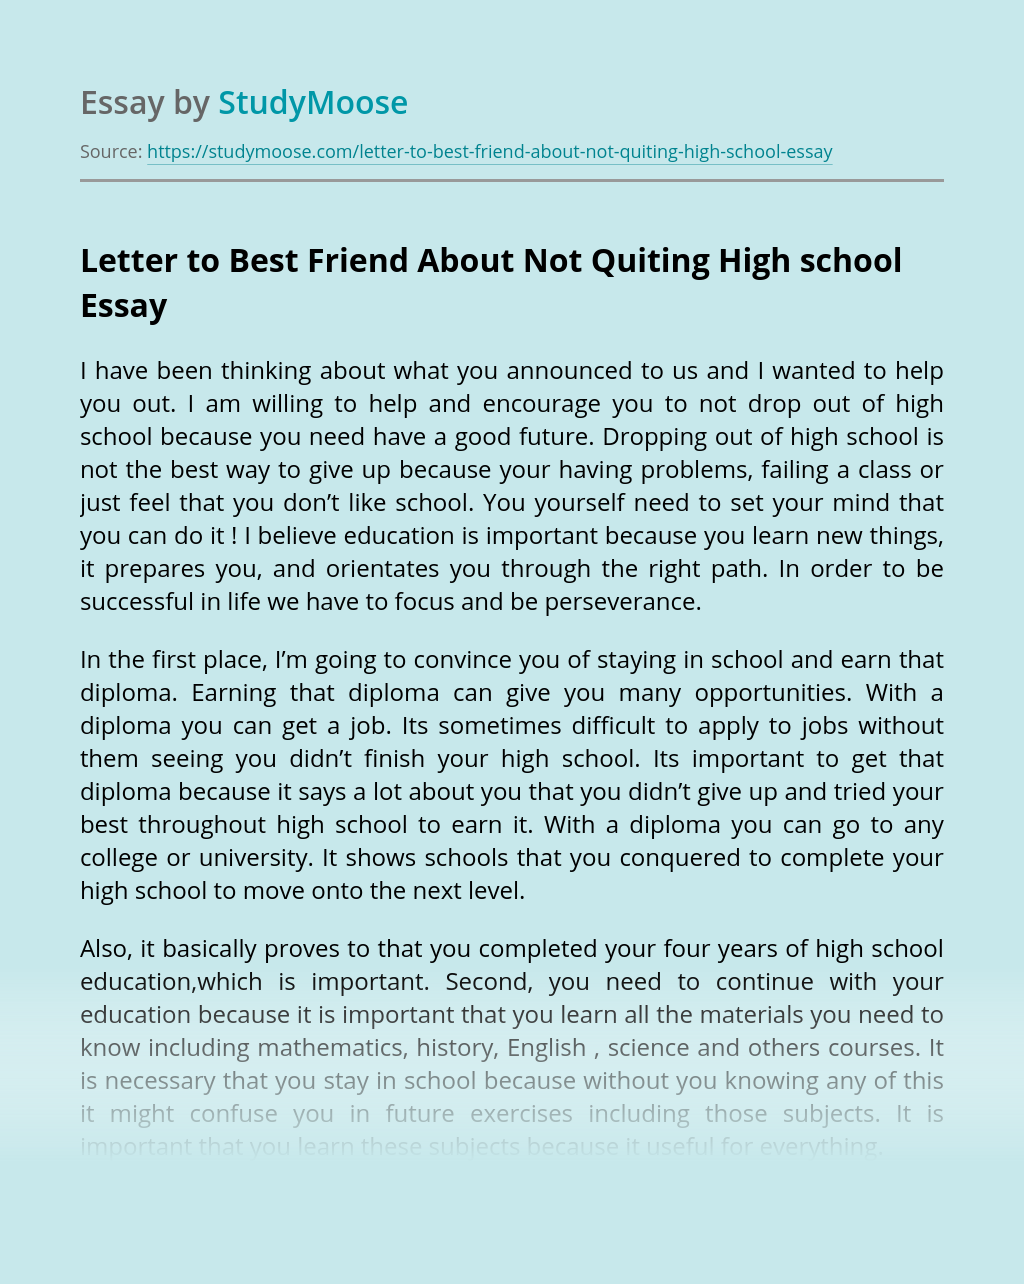 Letter to Best Friend About Not Quiting High school